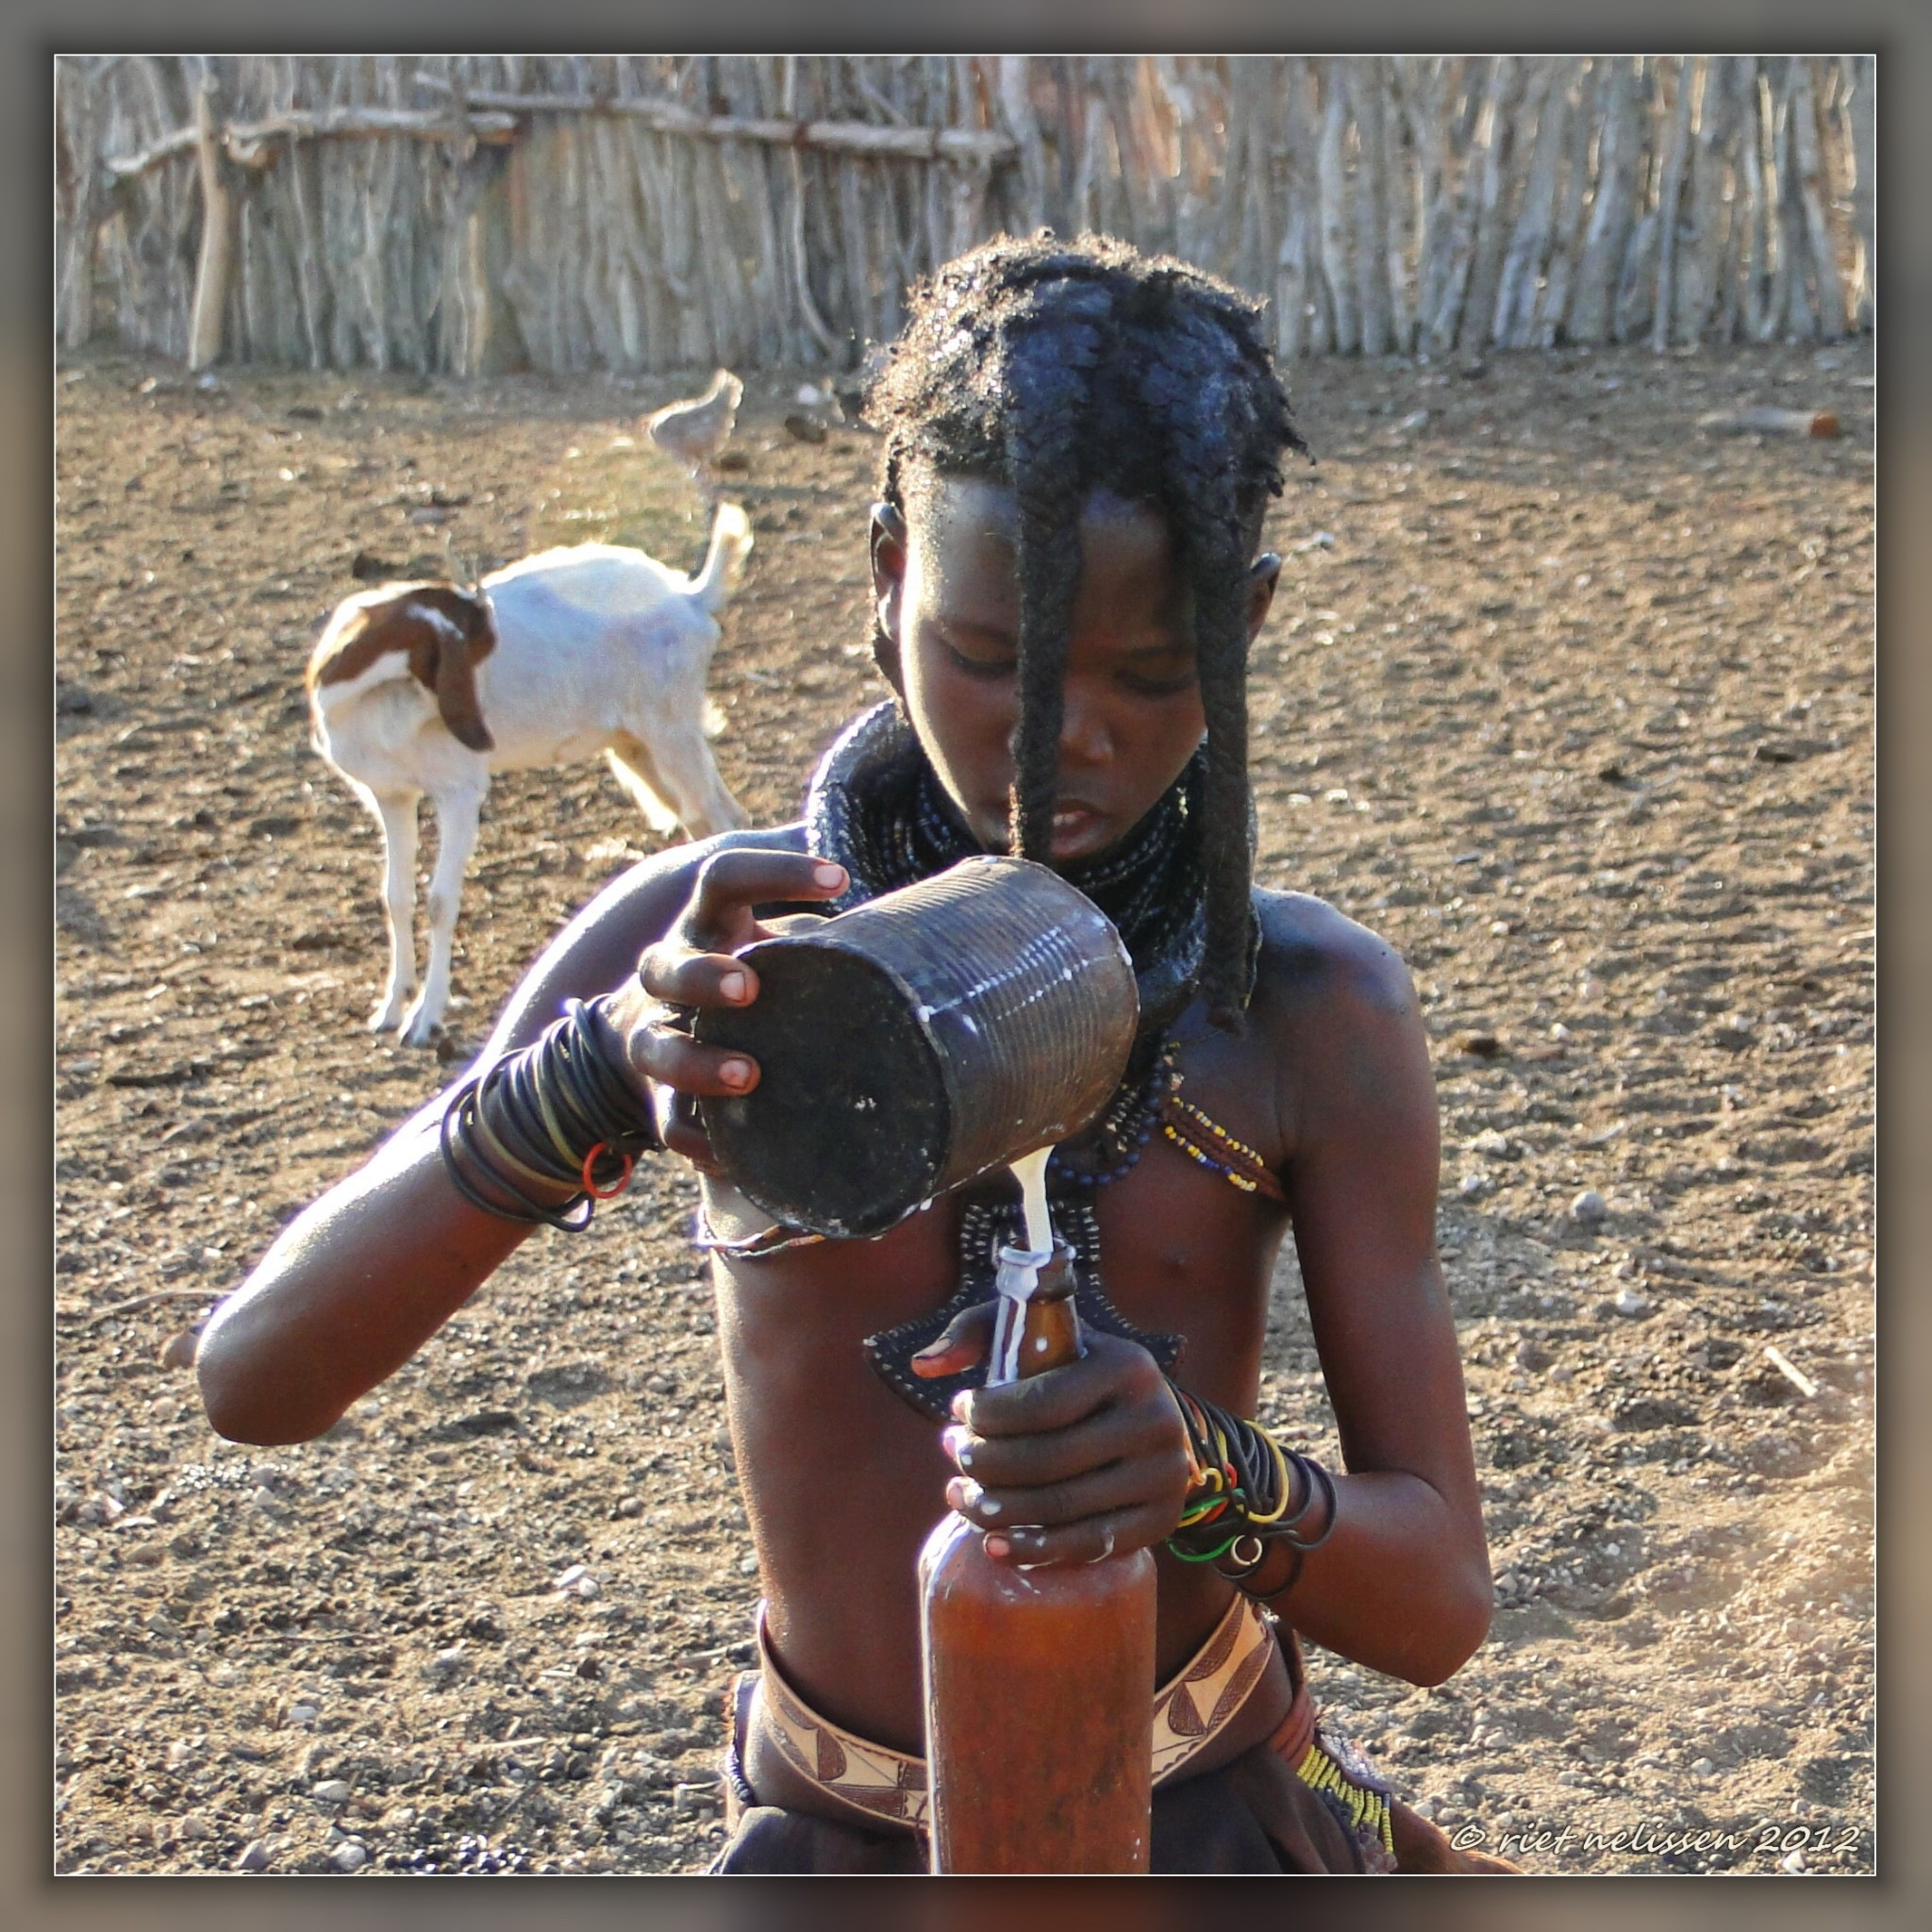 #,Himba boy by nelisser